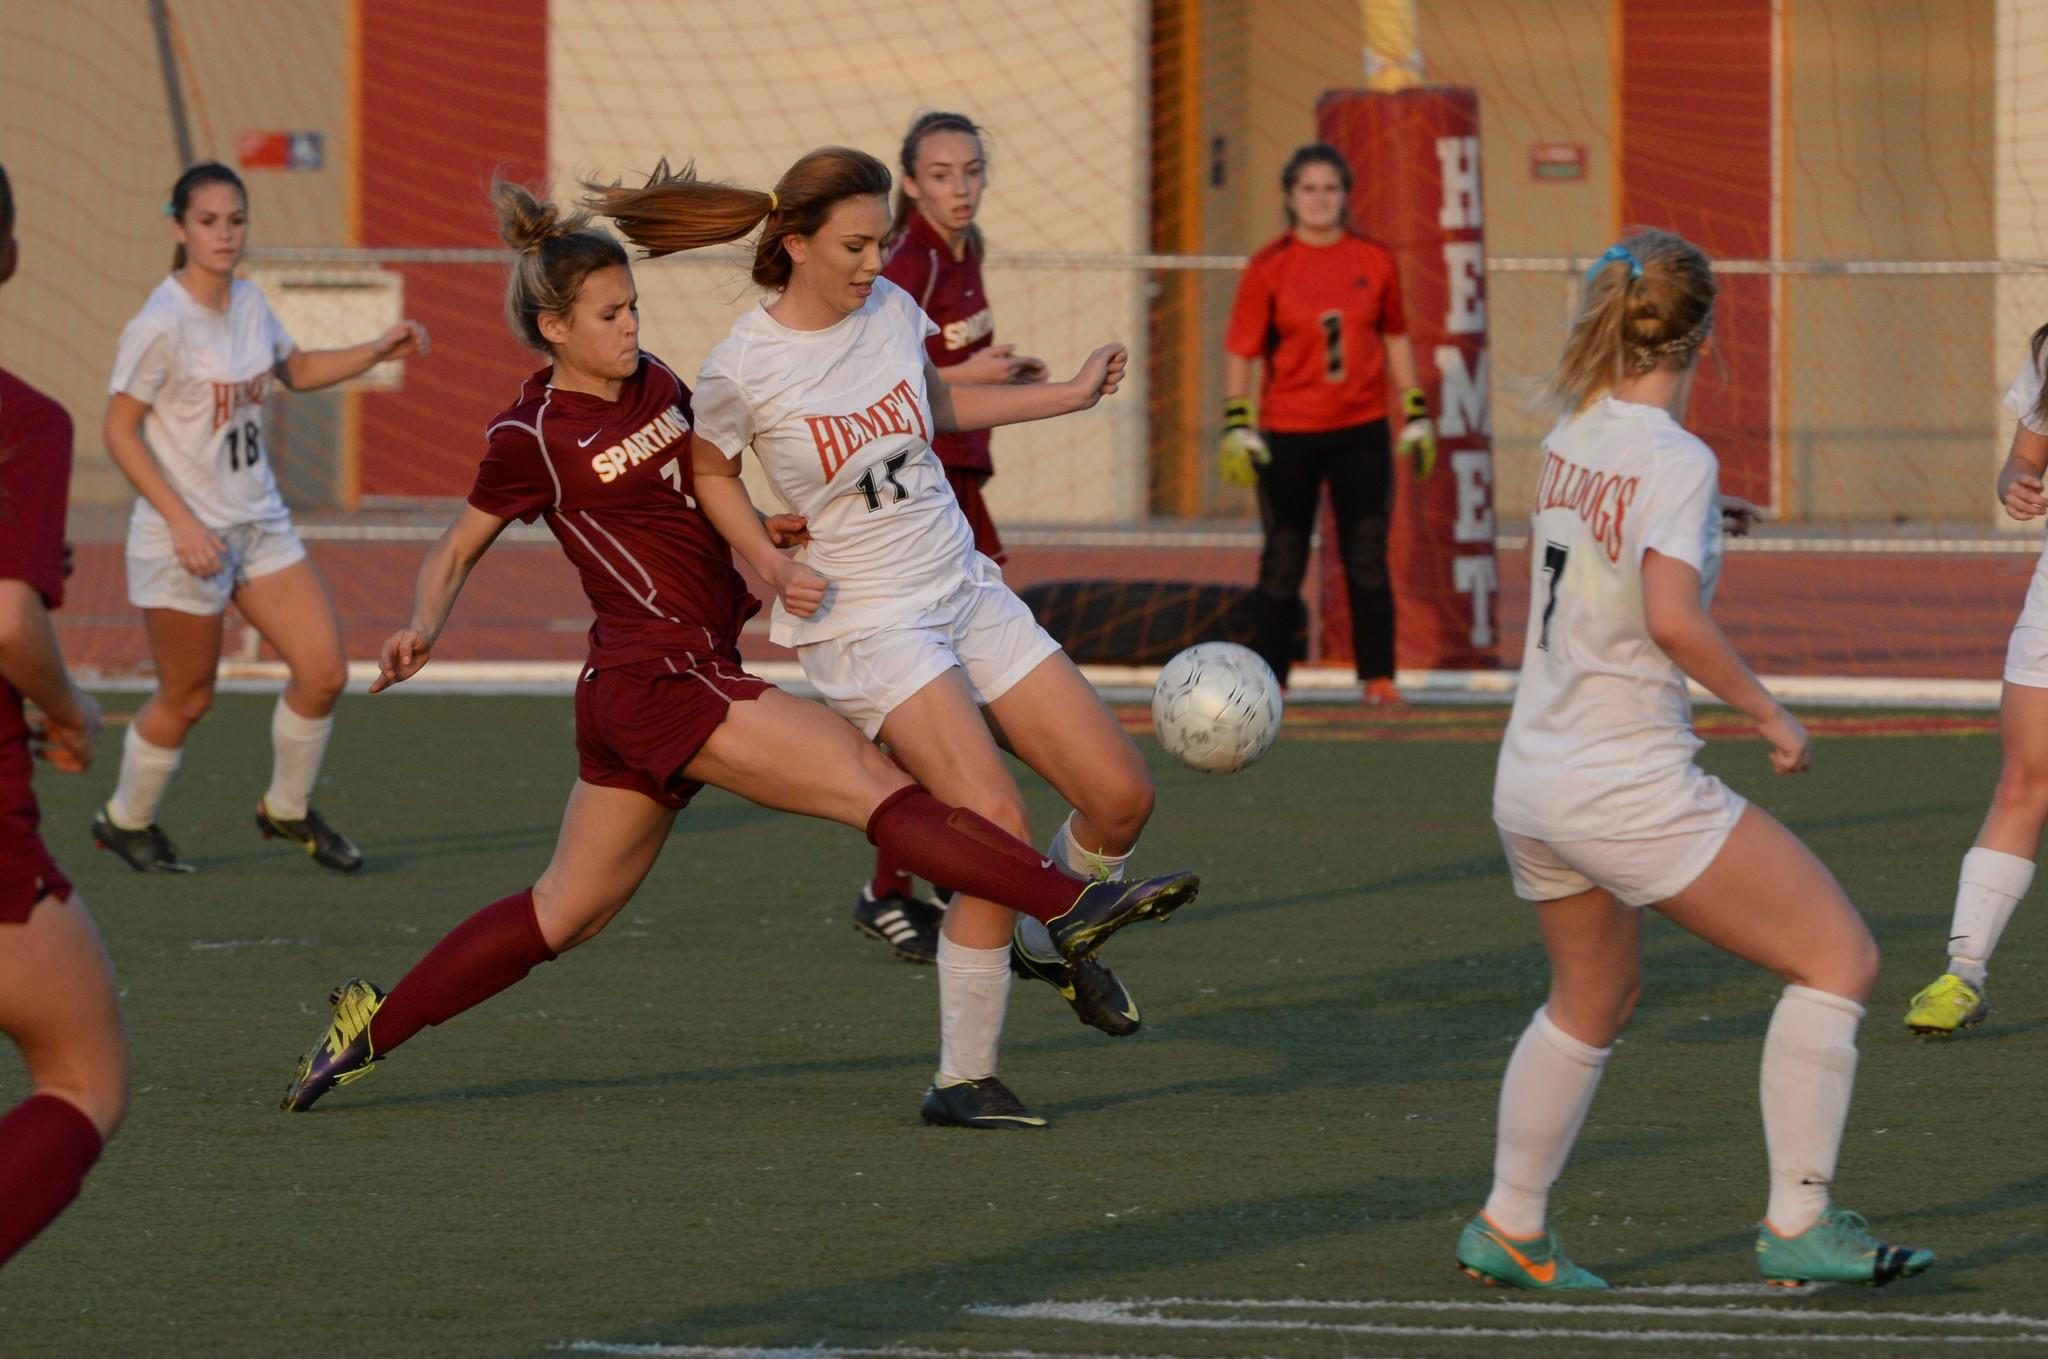 La Cañada High's Megan Decker (7) attempts to bypass the defense of Hemet in Tuesday afternoon's CIF Southern Section Division V girls' soccer semifinal match. The Spartans won, 2-0. (Courtesy of Doug Brown)